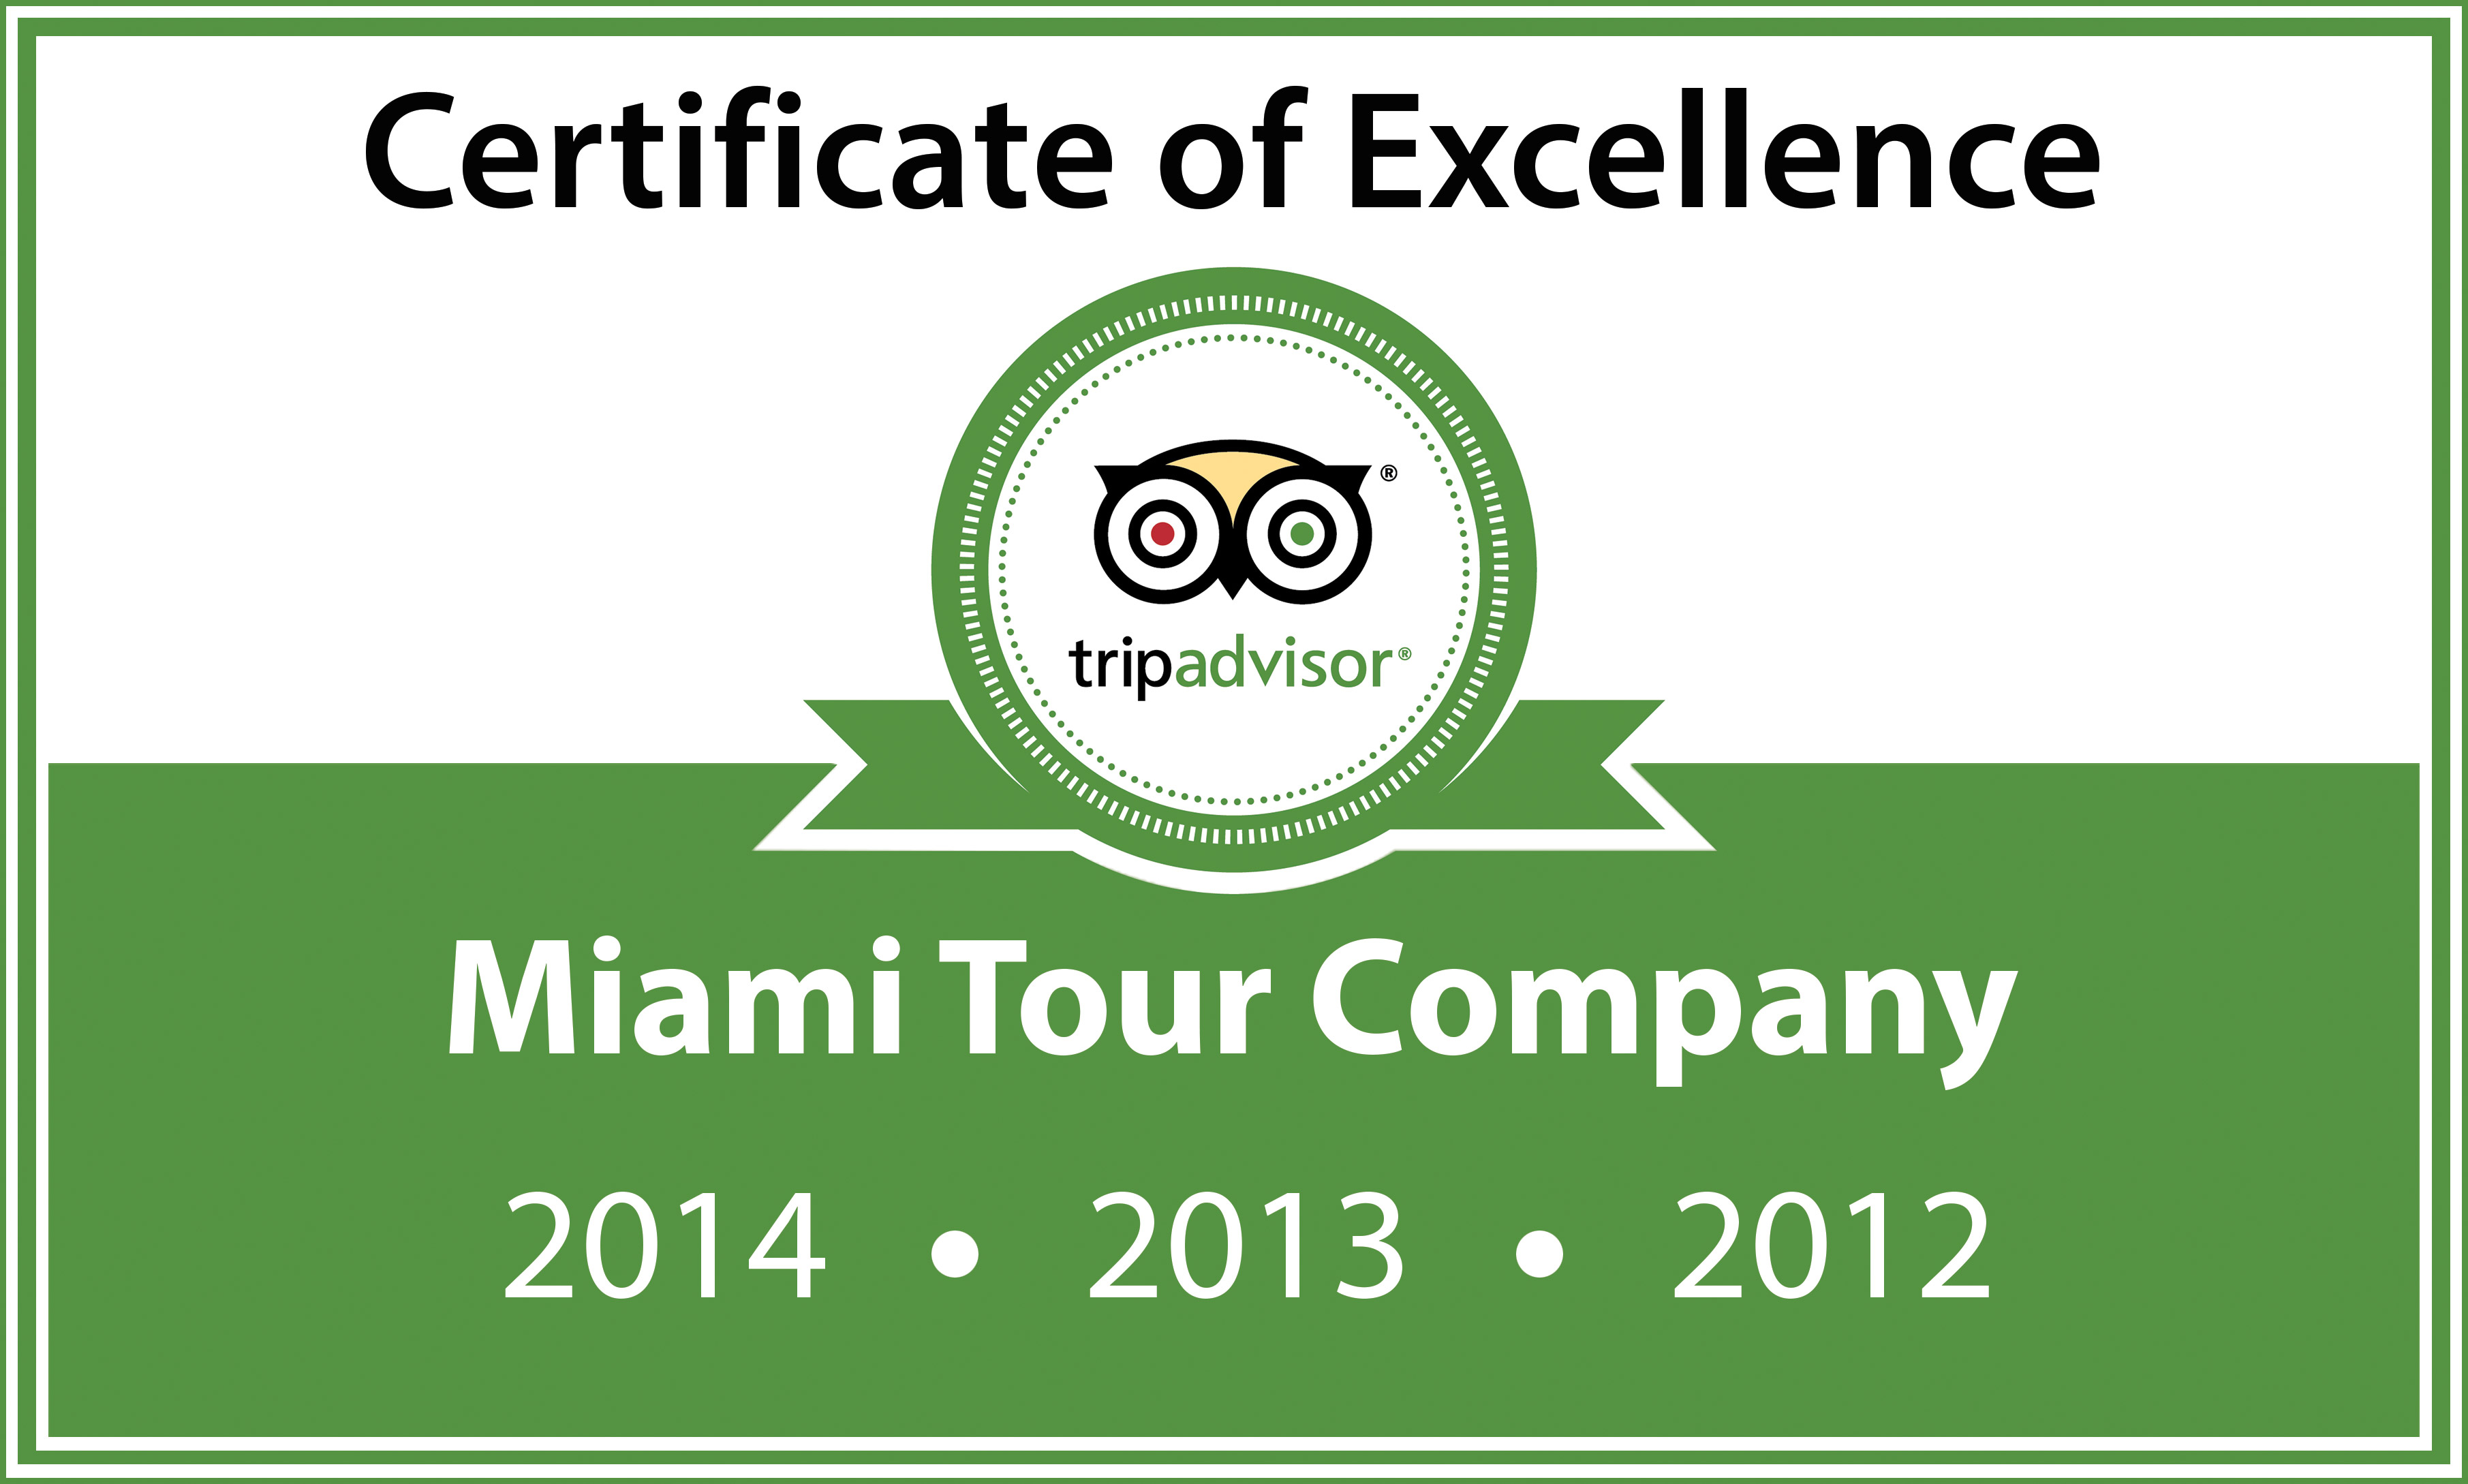 Miami tour company reviews on tripadvisor xflitez Image collections